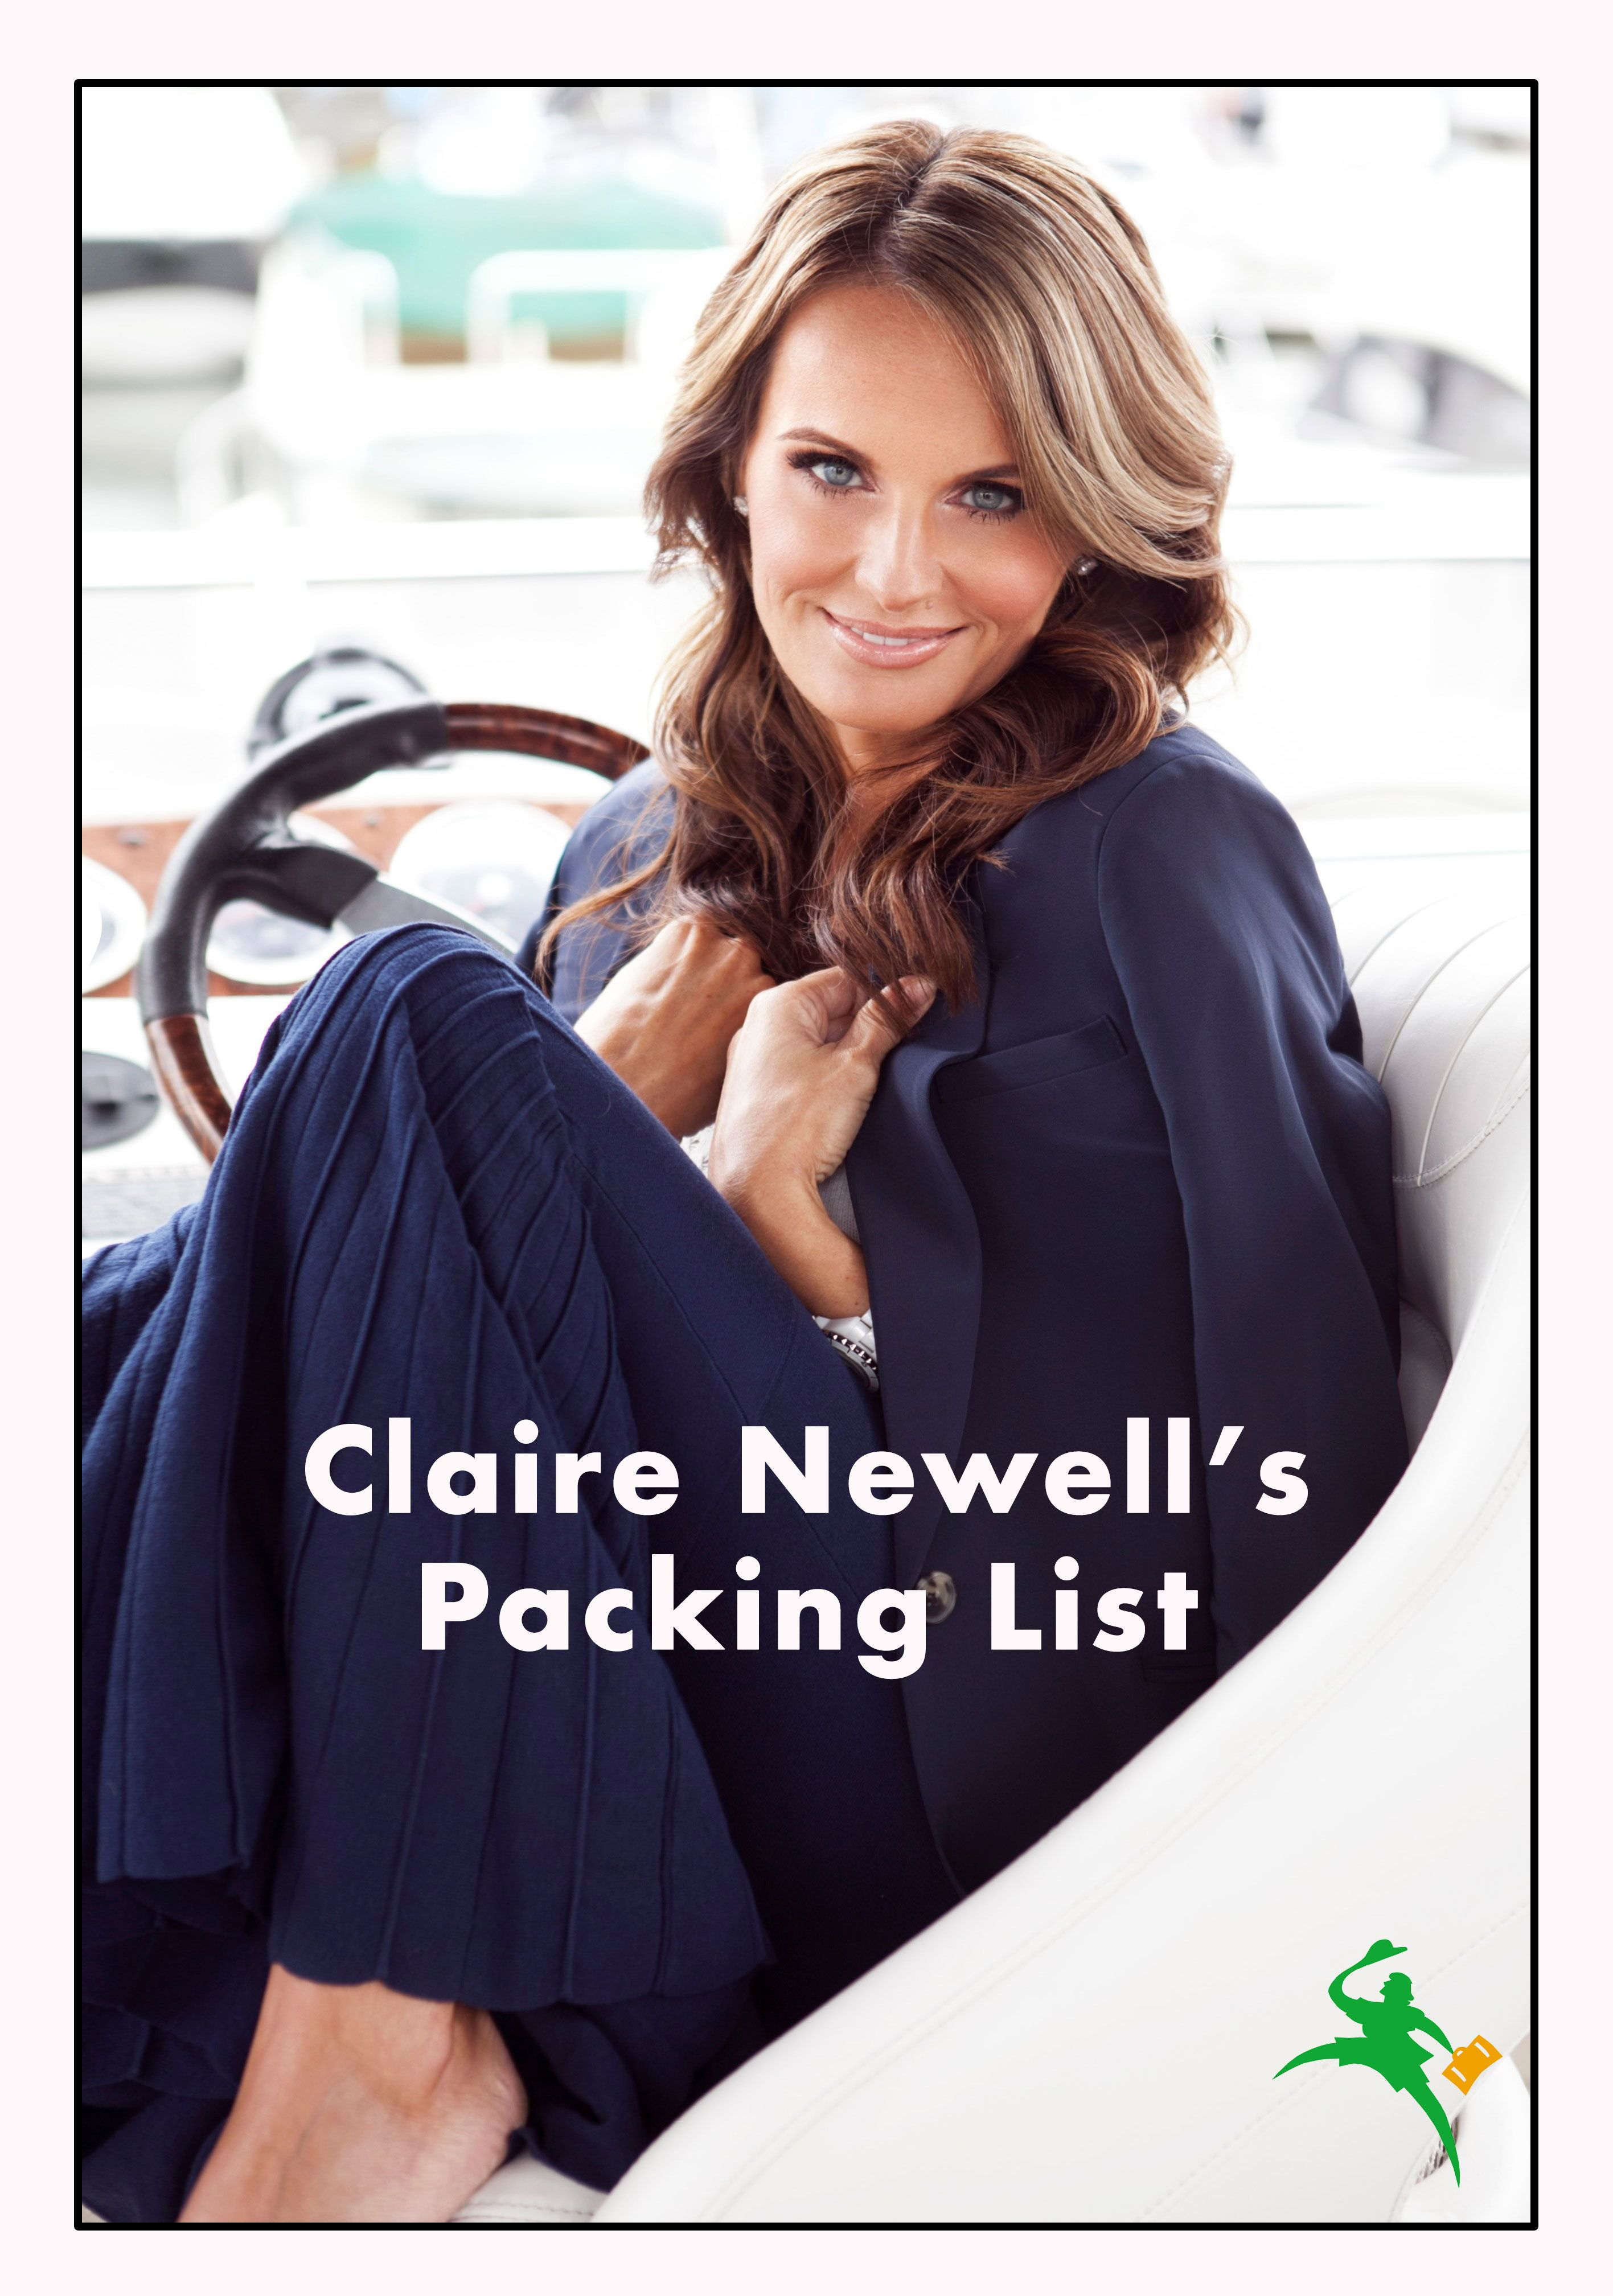 Pack for your next trip like travel expert, Claire Newell   #PackLikeaPro